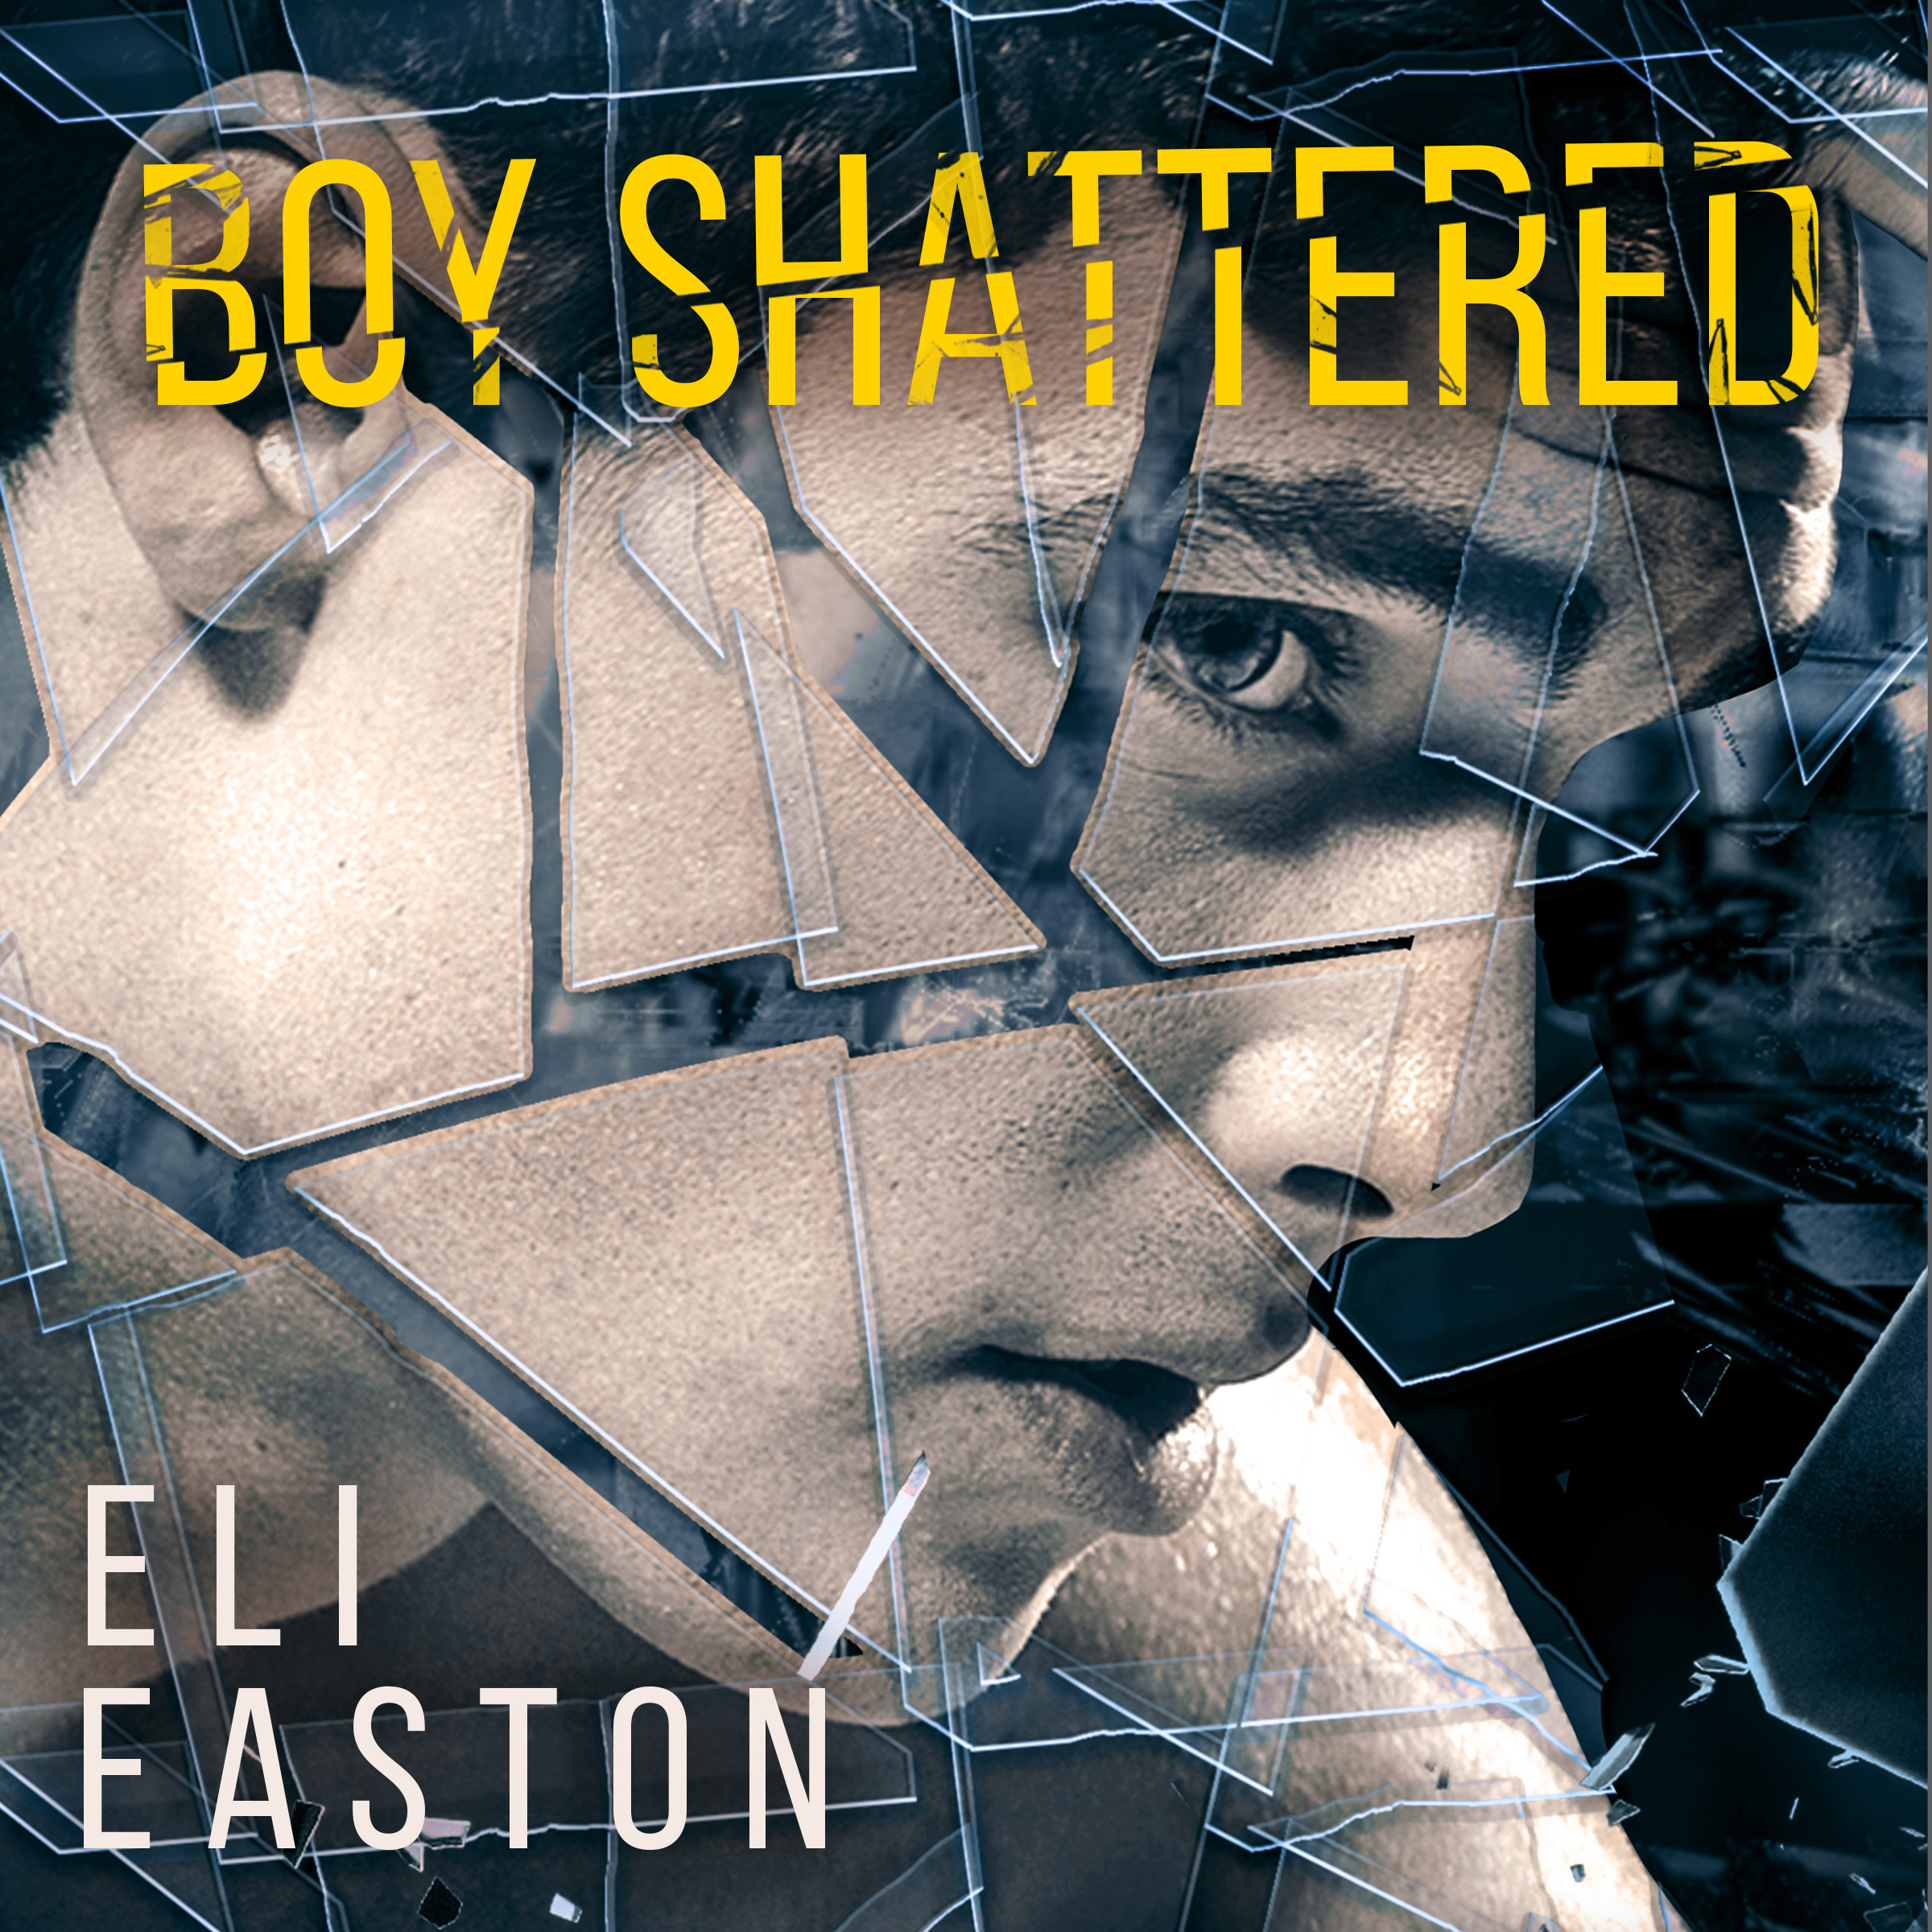 BoyShattered Audiobook Cover2